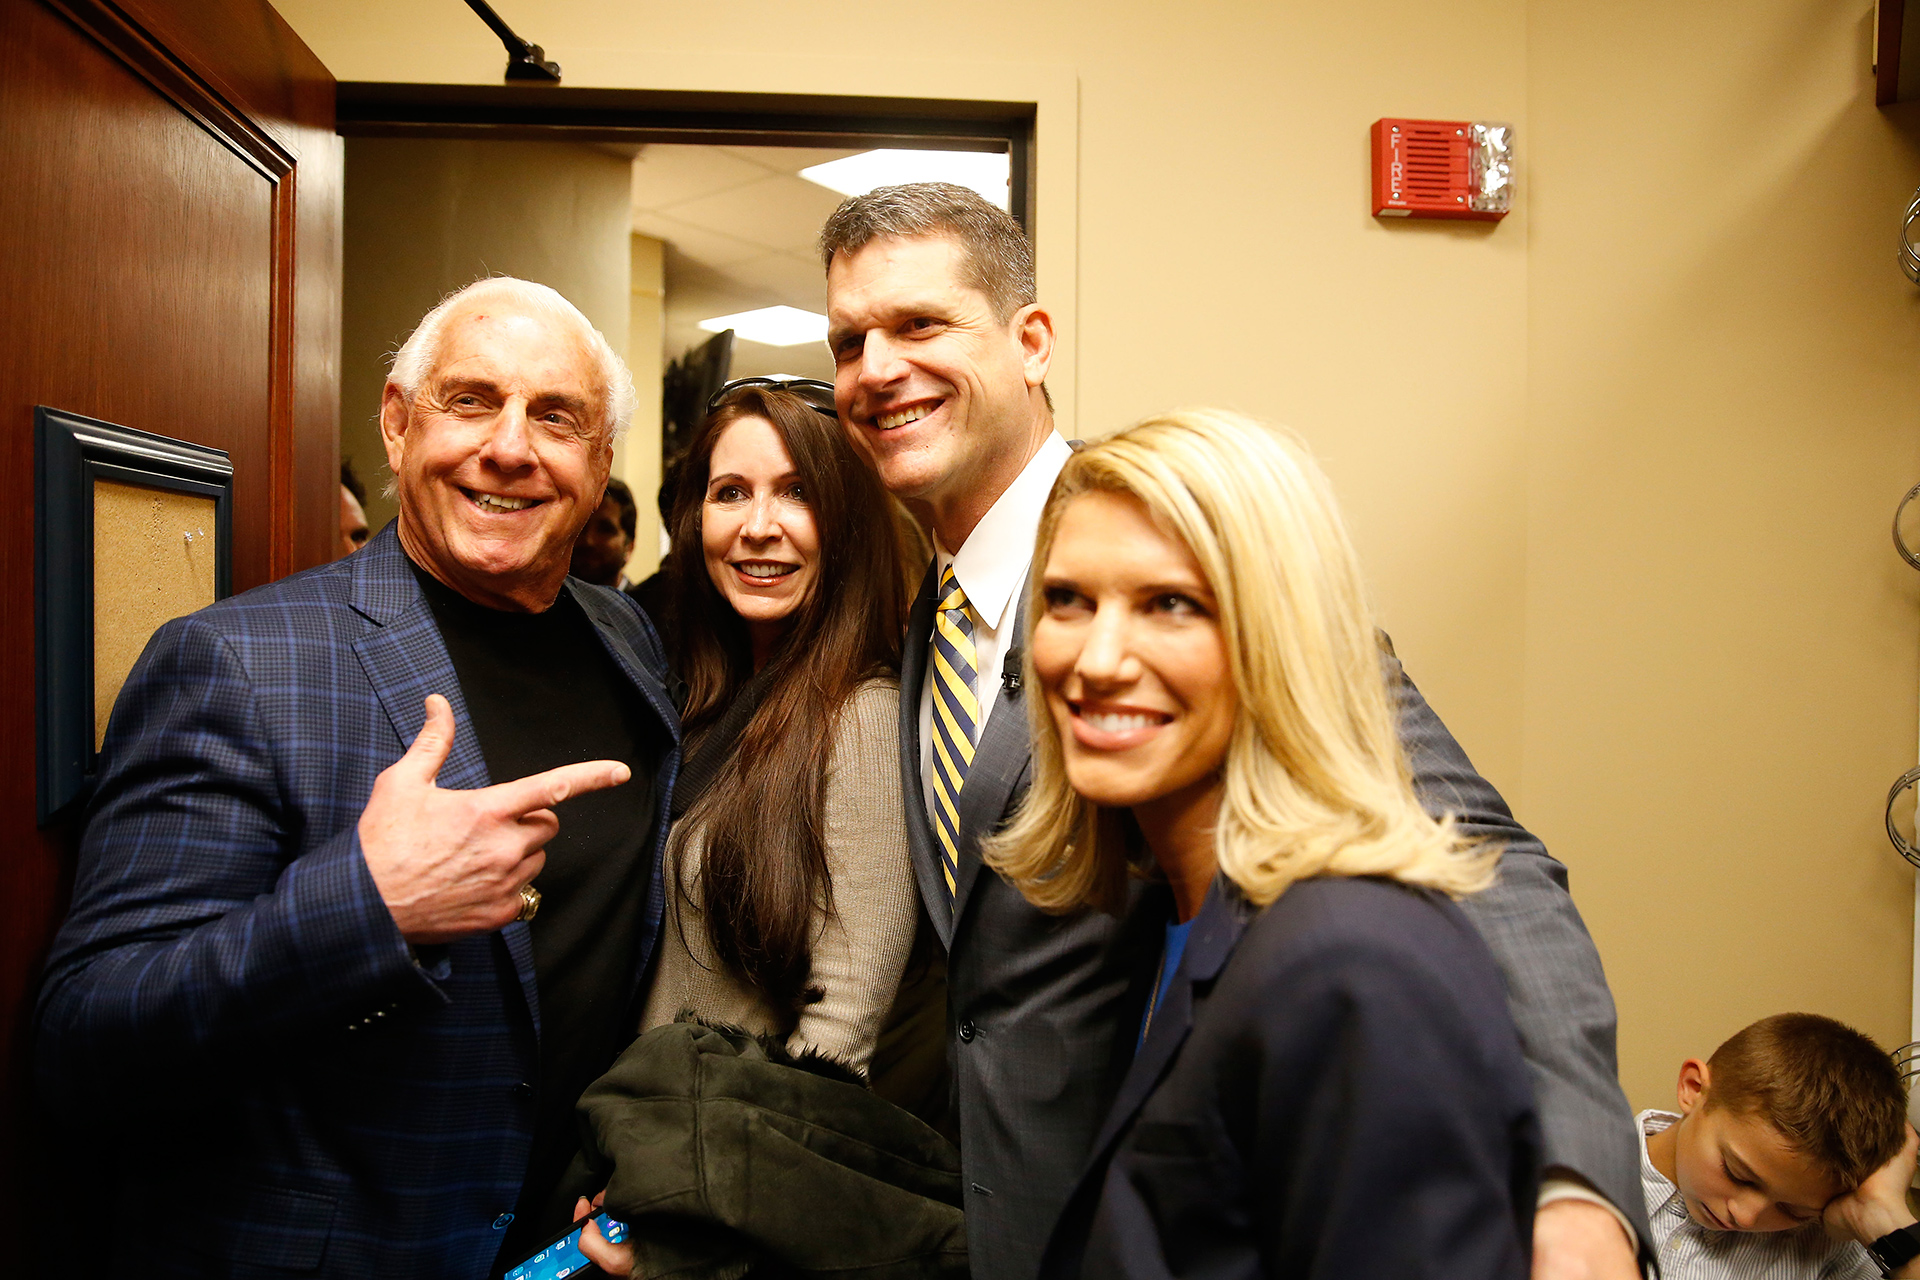 WWE wrestler Ric Flair was on hand to witness the festivities.